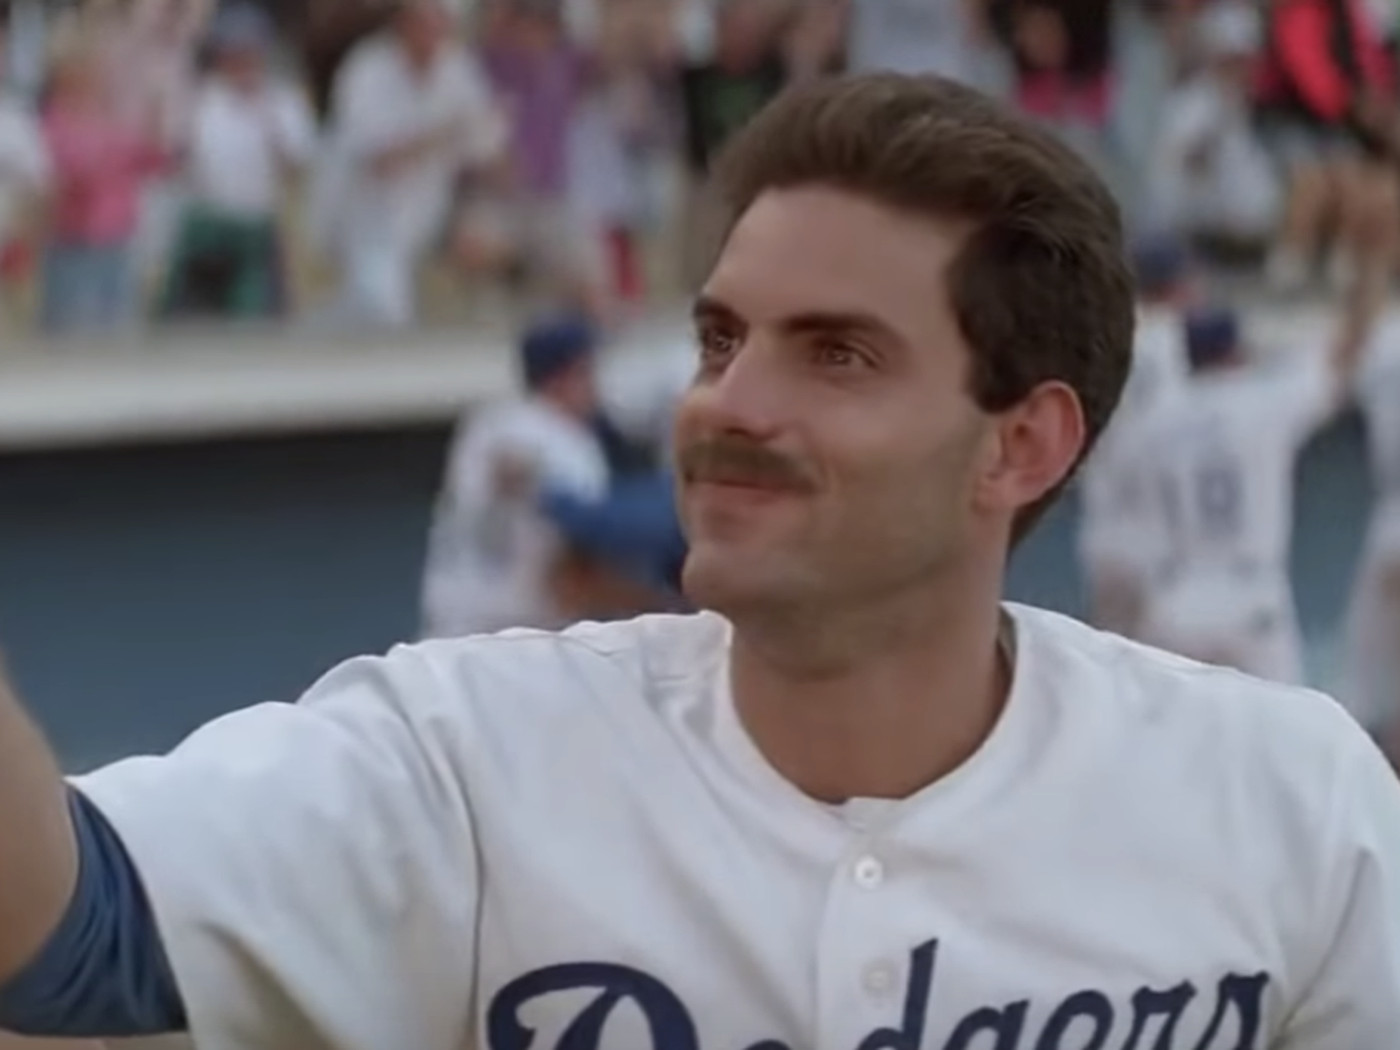 The Last Dodgers Steal Of Home Was By Benny The Jet In The Sandlot True Blue La